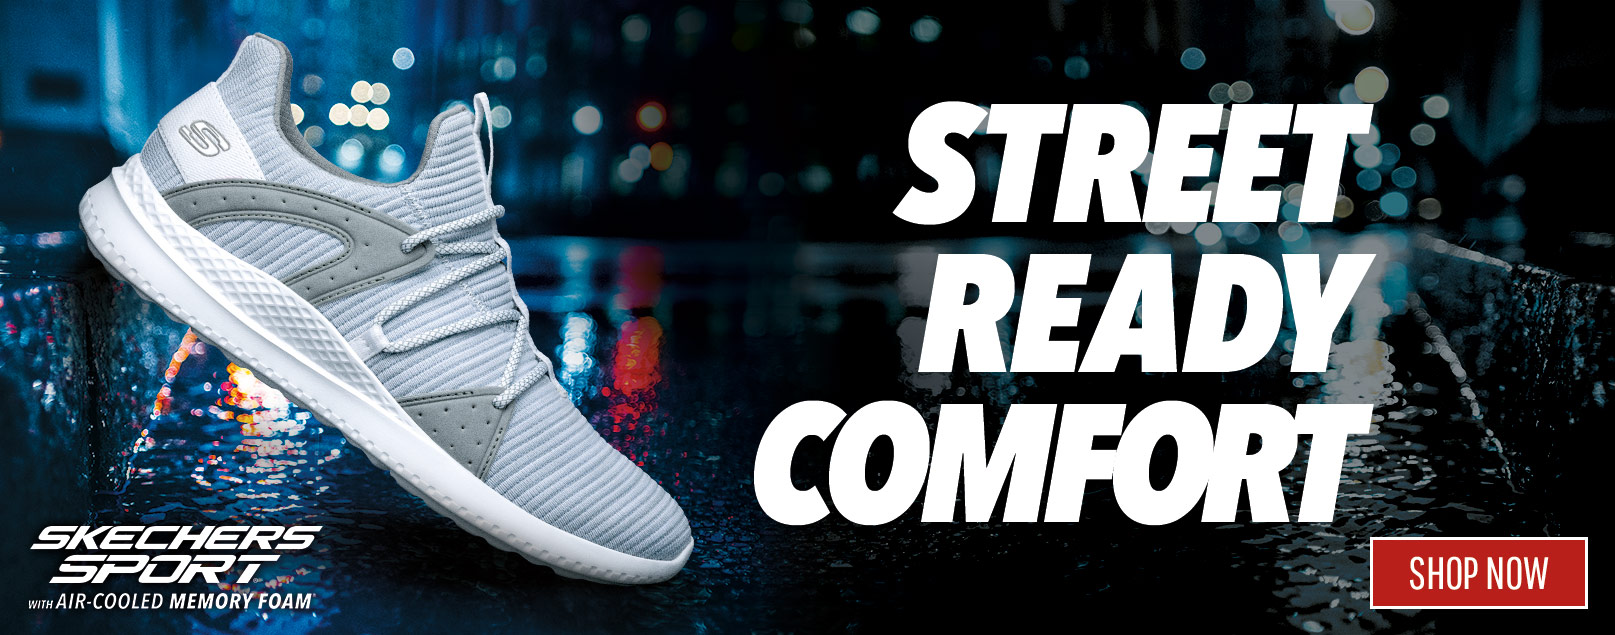 STREET READY COMFORT WITH SKECHERS SPORT FOR MEN